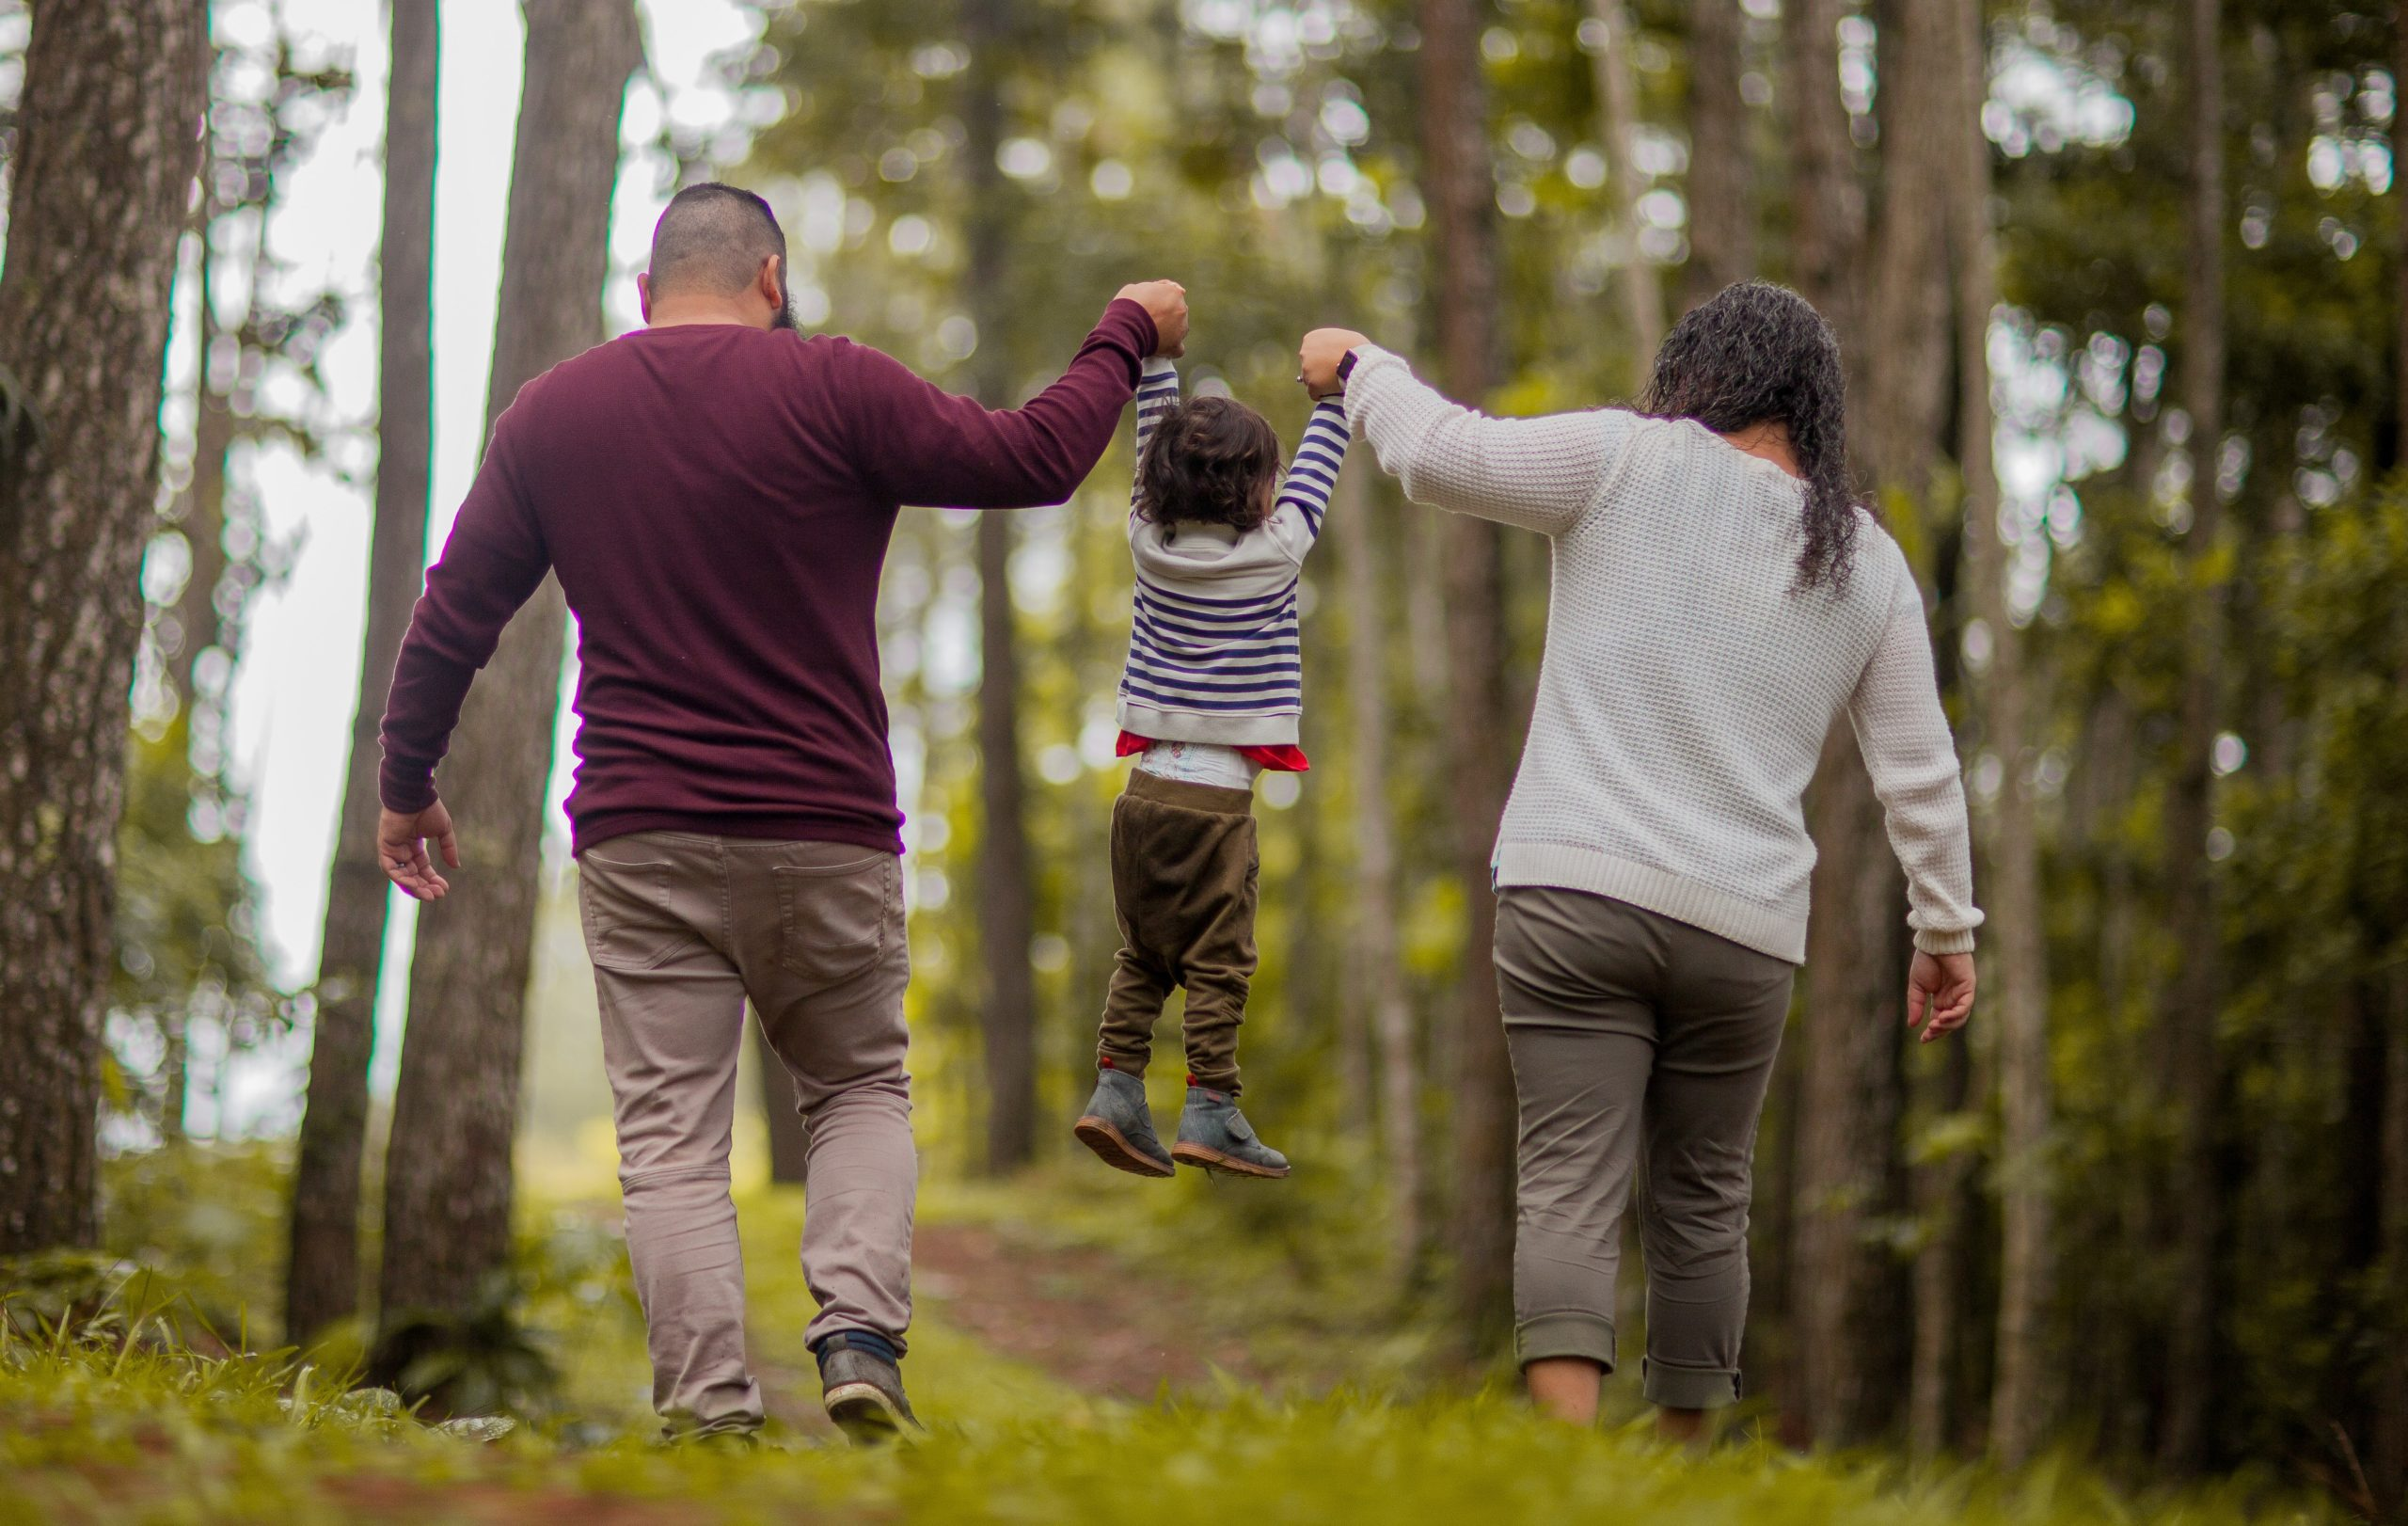 Parenting: Tips To Be Aware Of As A Parent